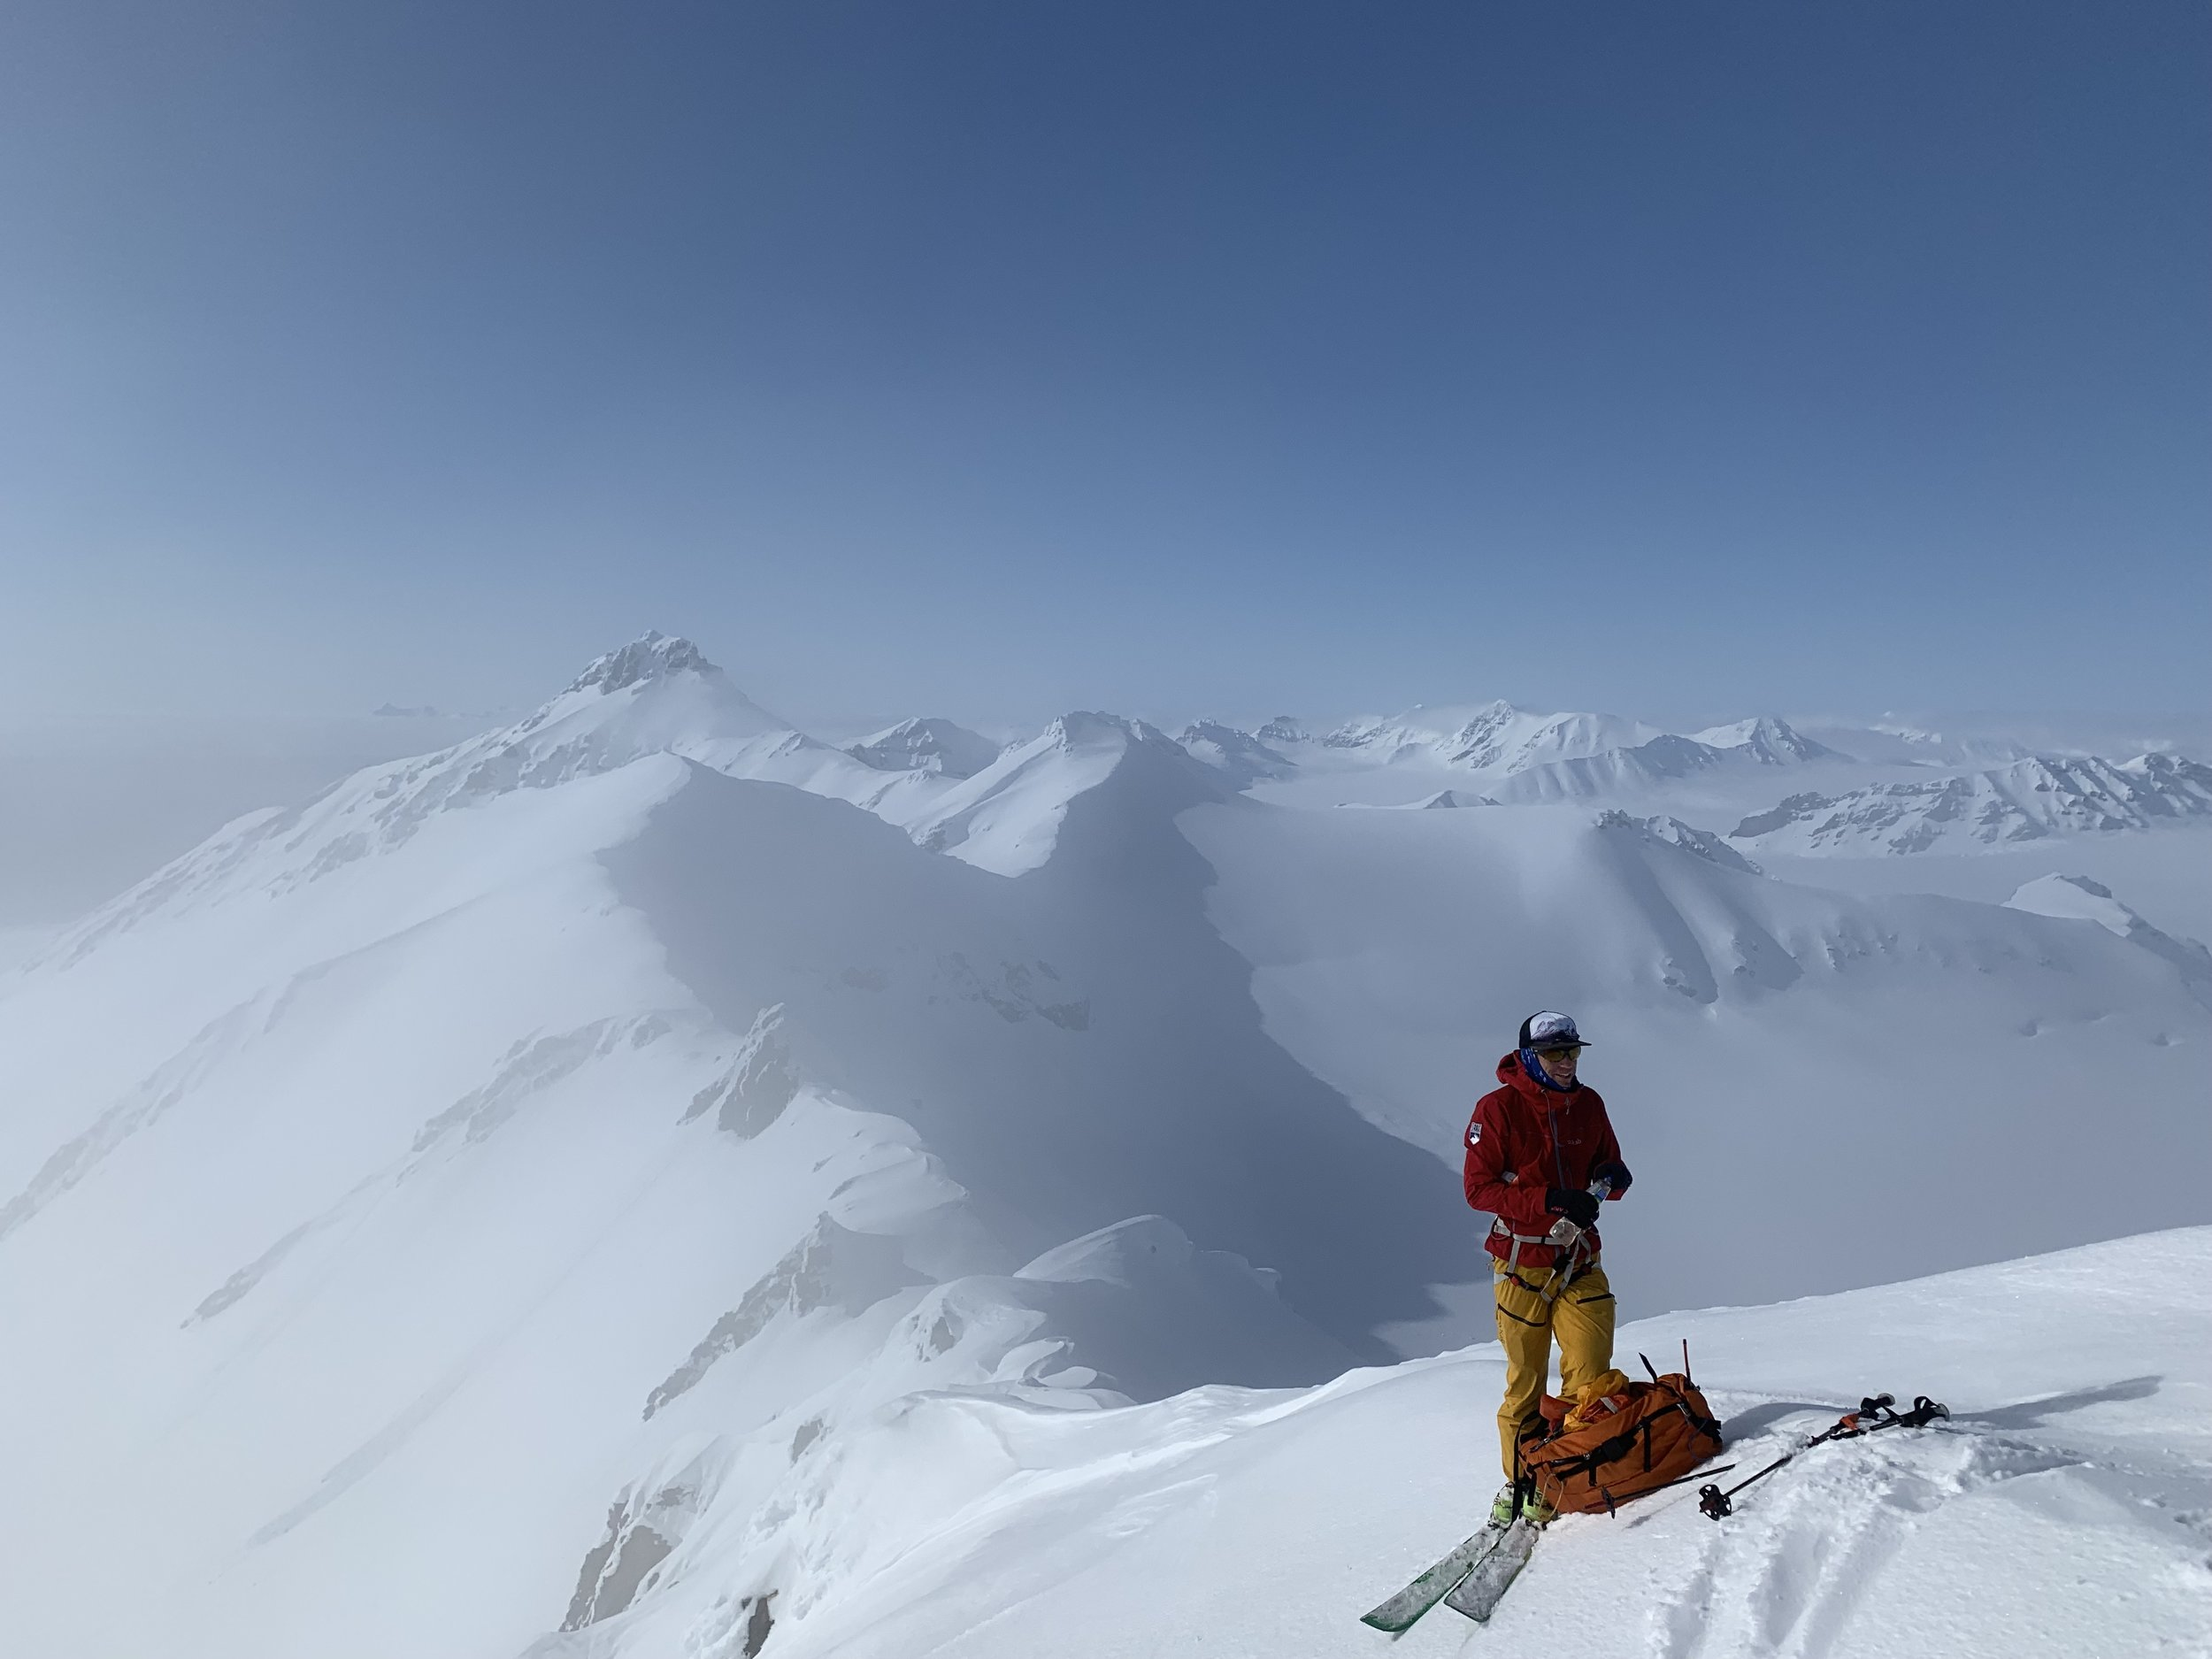 Another summit and transition before skiing to the Barents Sea…